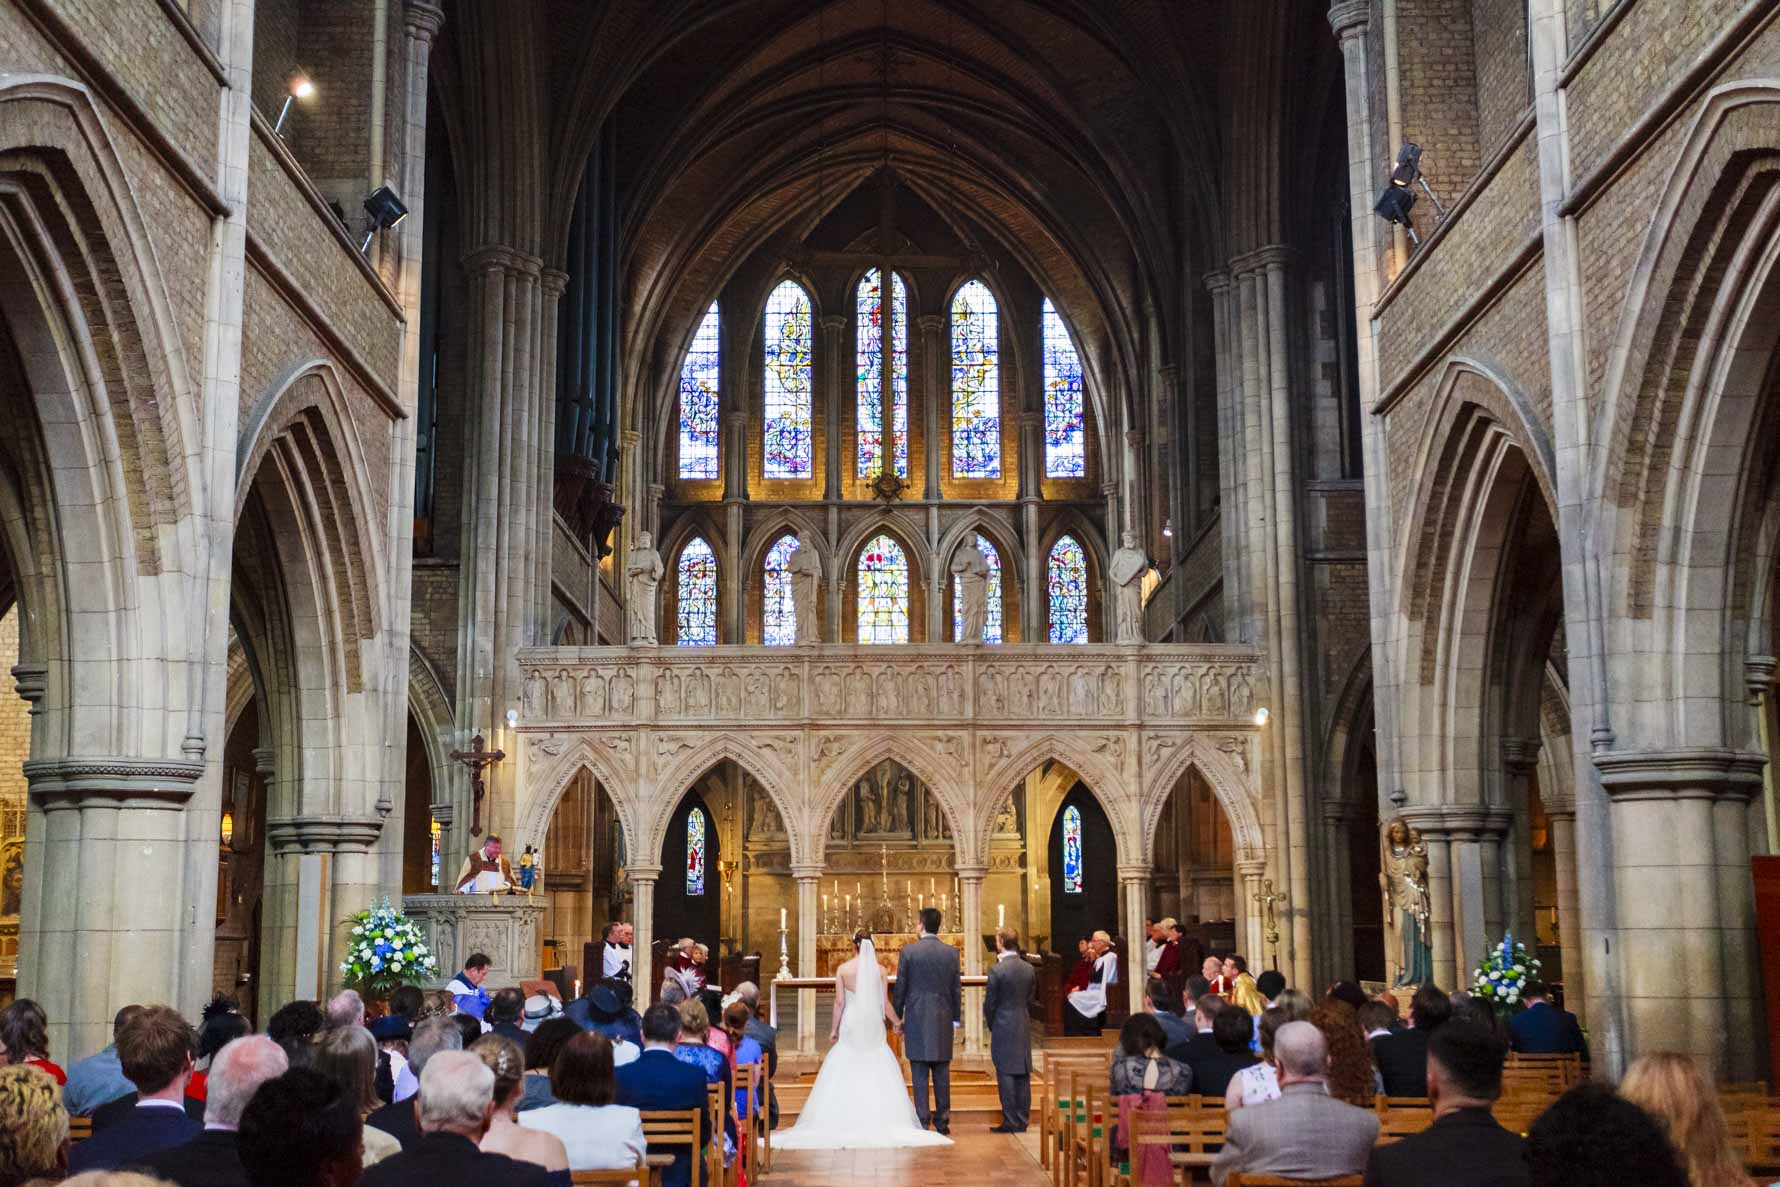 A wdie angle shot of a couple in church on their wedding in front of a huge stained glass window